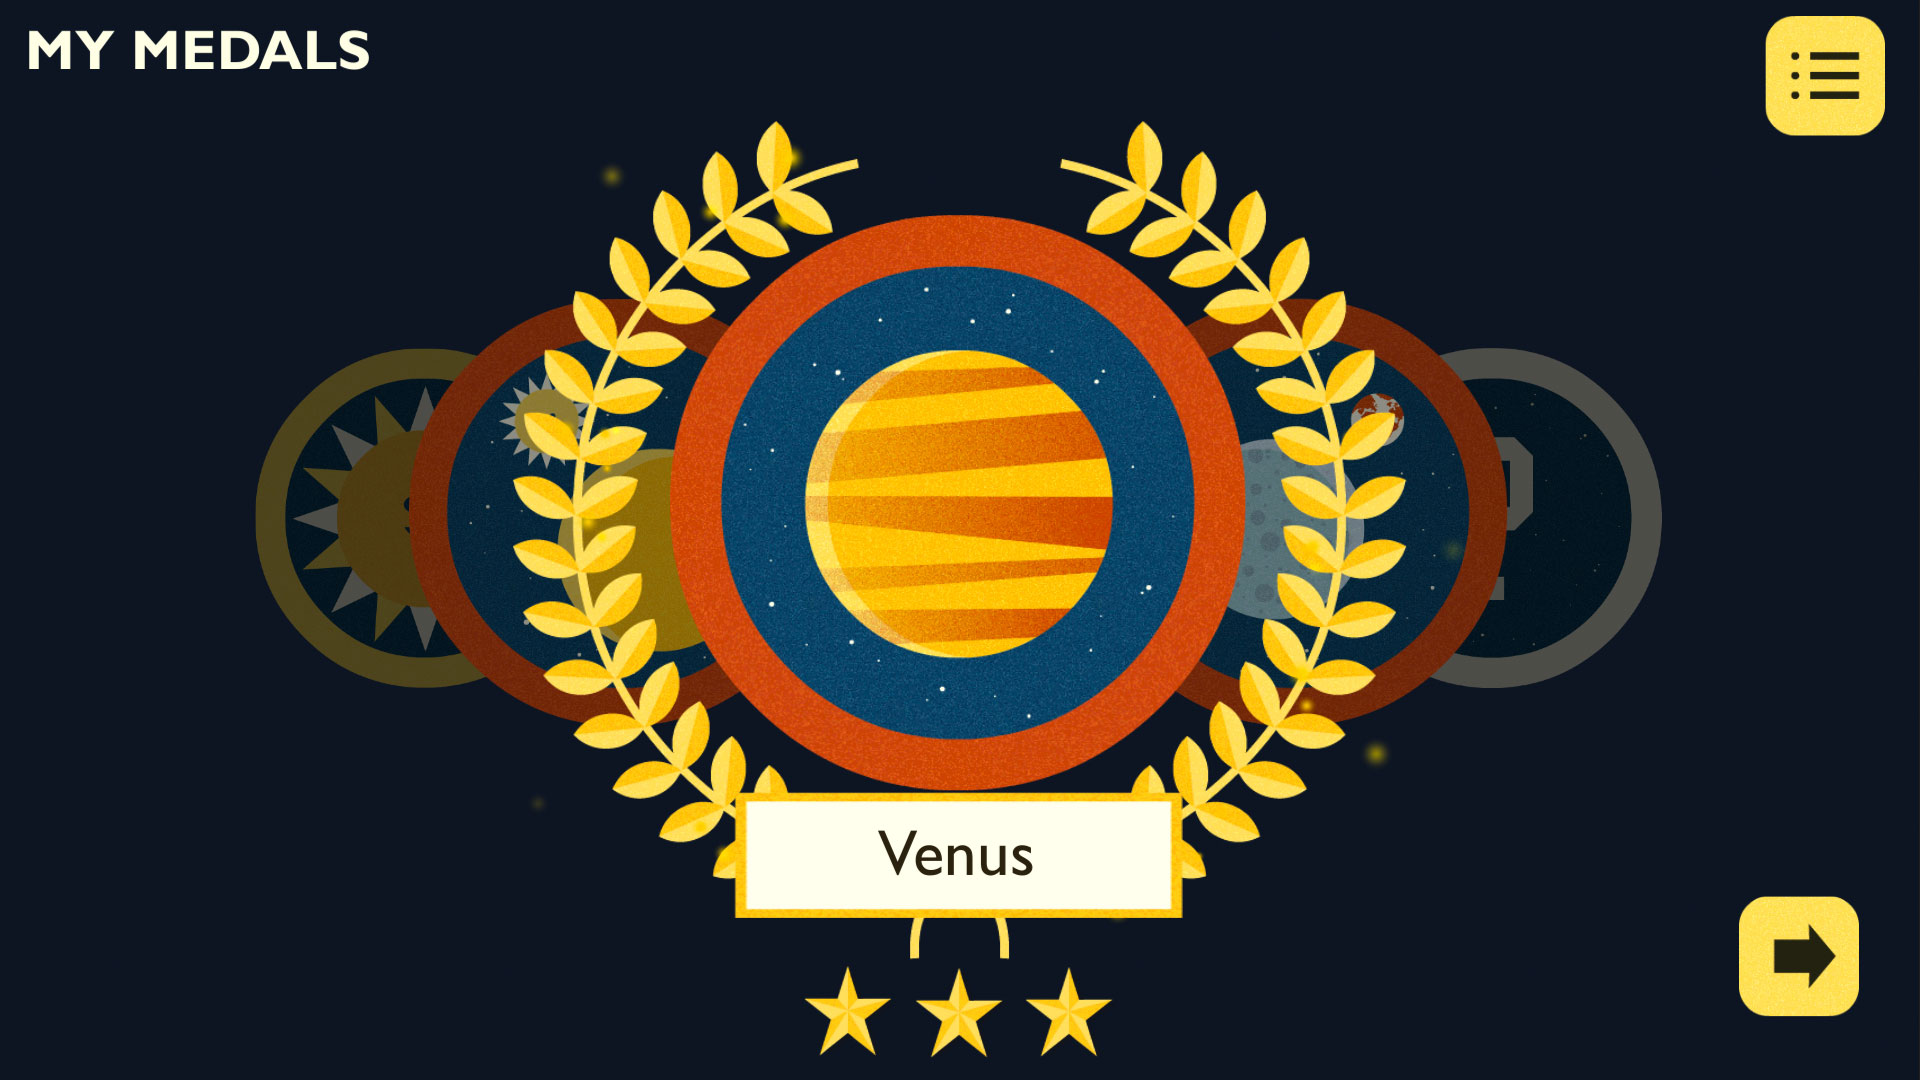 A medal featuring the planet Venus with gold laurels